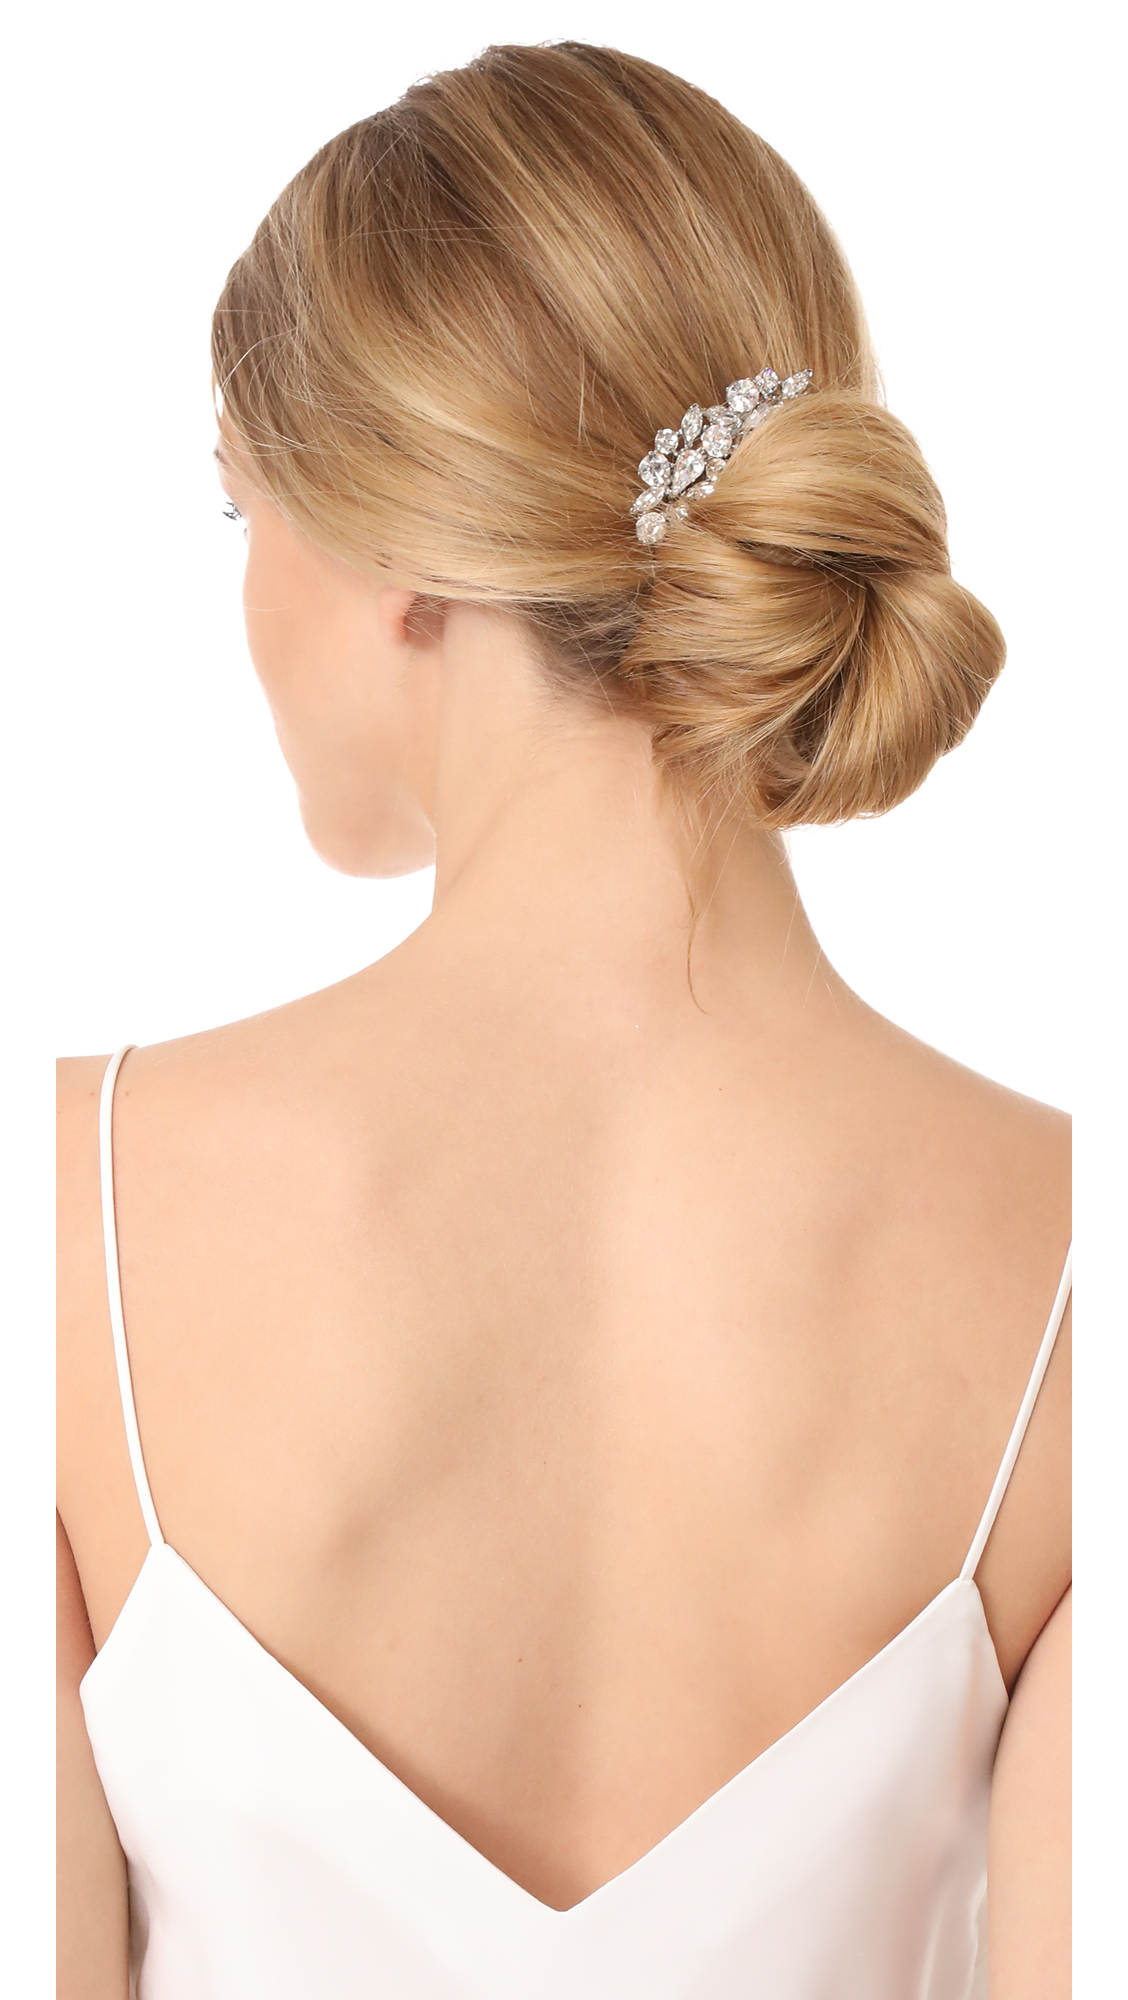 blonde haired woman wearing Crystal Cluster Hair Comb above bun